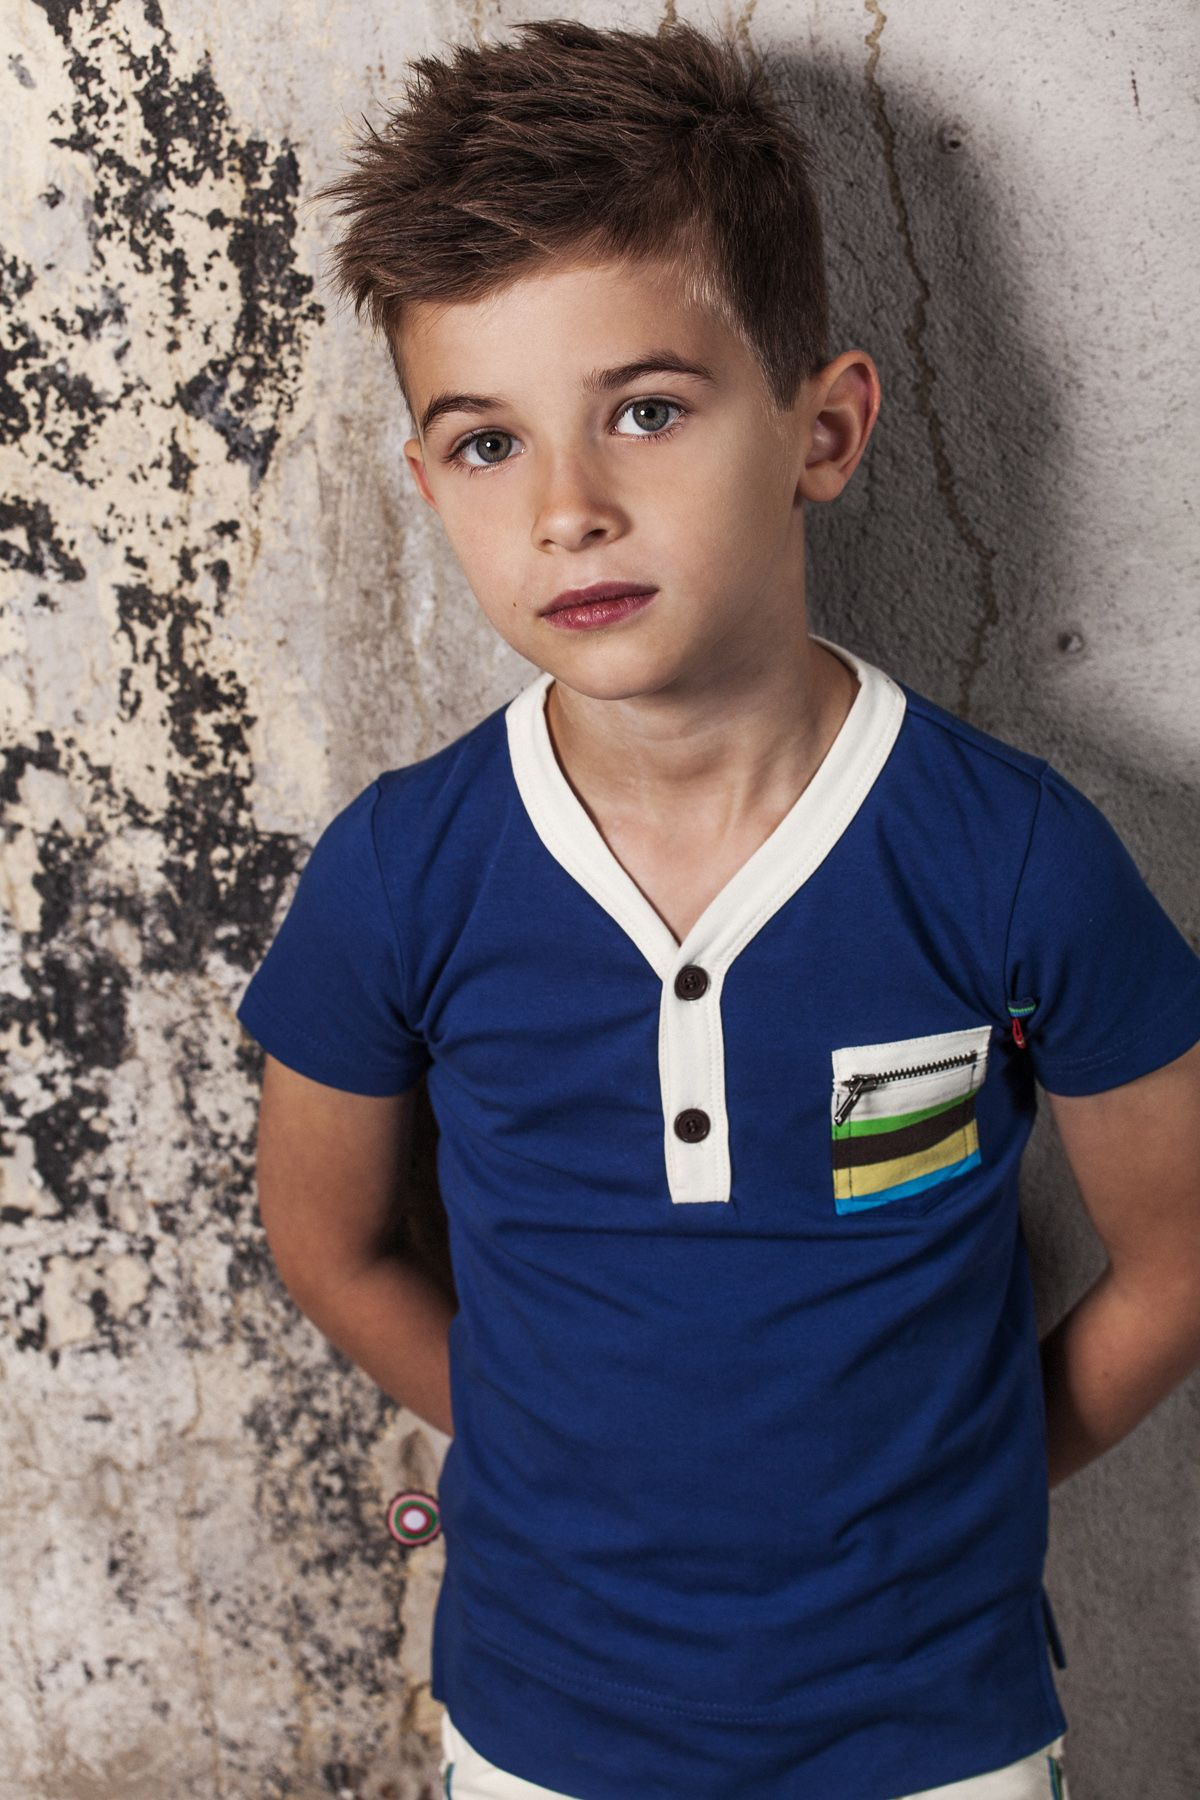 Trendy and Cute Boys Hairstyles for Dylan Pinterest